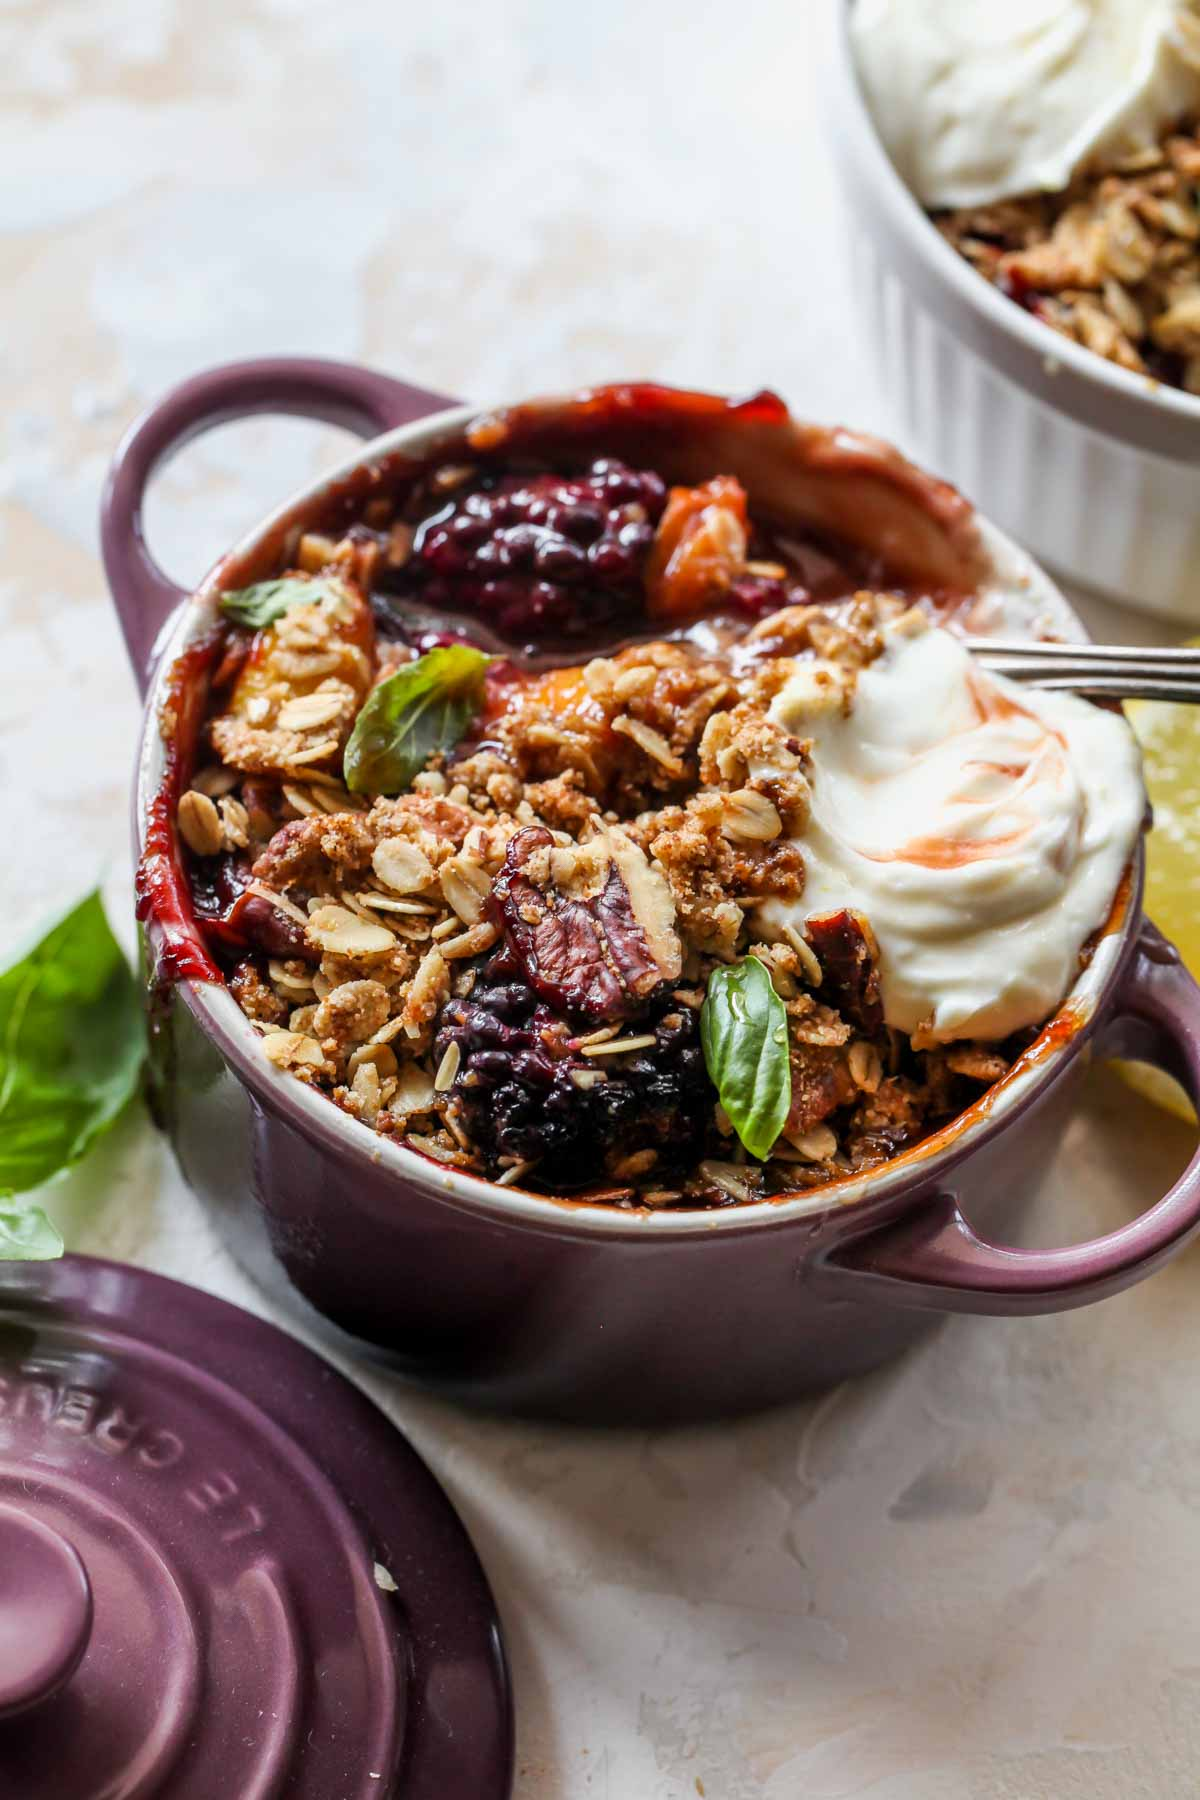 Peach and blackberry crisp topped with oat crumble and whipped goat cheese